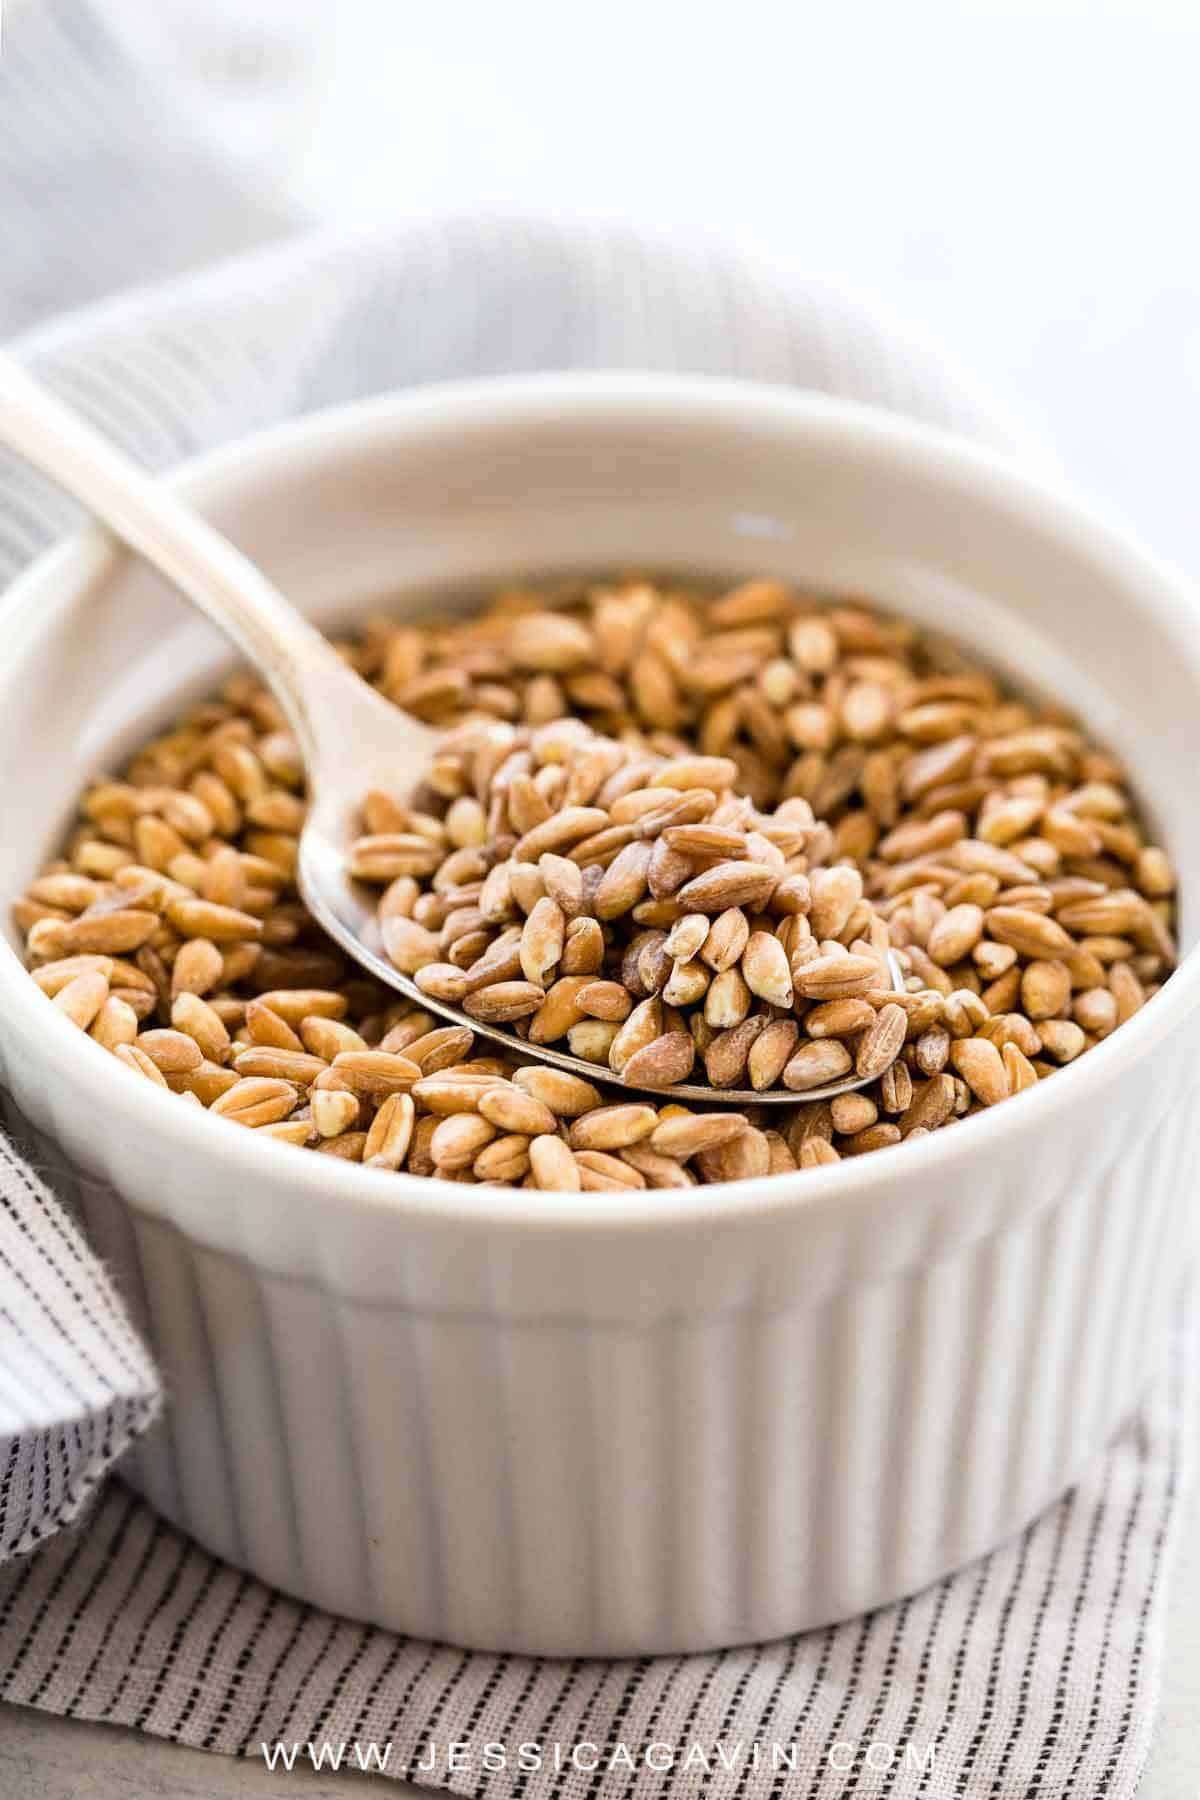 Farro is an ancient whole grain with dietary benefits. Farro is derived from wheat so it is not gluten-free. This informational guide will explain what farro is, how to select the right variety, cooking techniques, nutritional information, and recipes to try. #farro #ancientgrain #ingredient #cooking